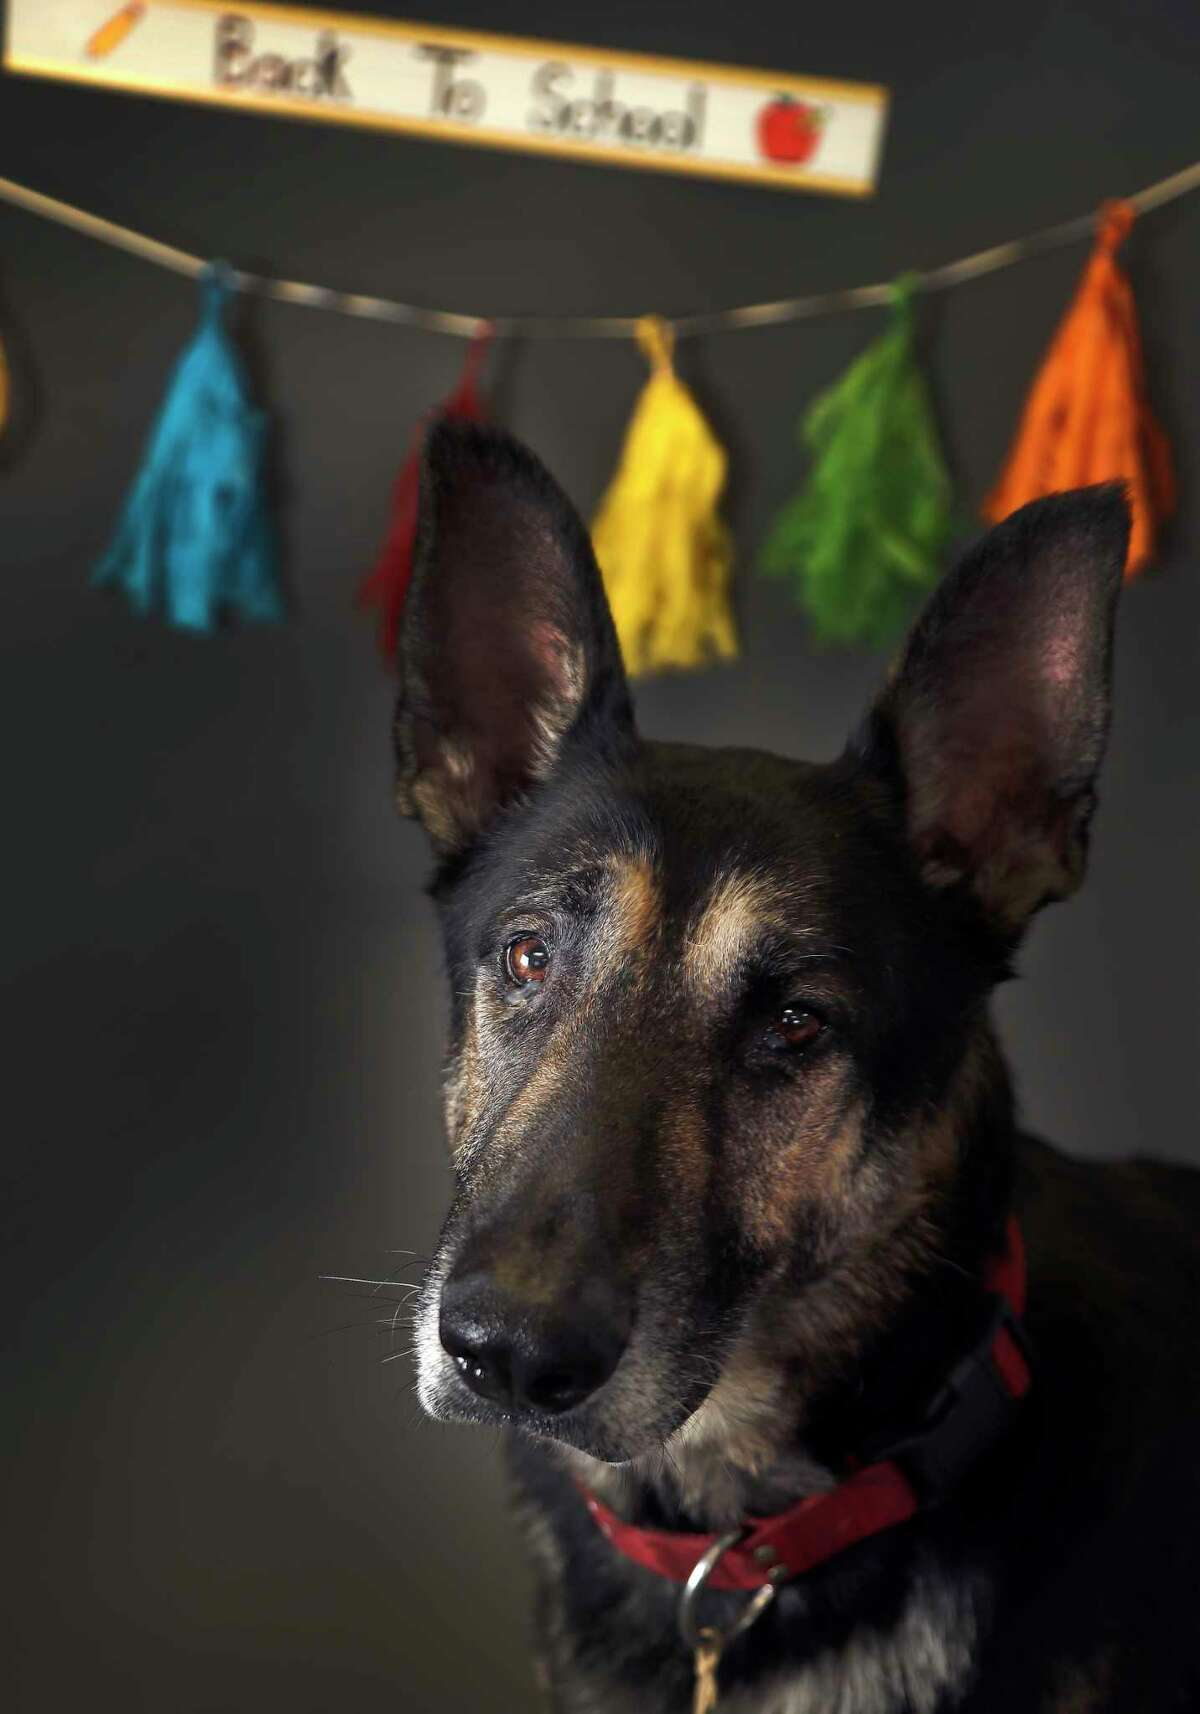 UNKNOWN: (Animal ID: A515719) A 6-year-old male, German Shepherd is available for adoption at the Harris County Animal Shelter, Tuesday, August 28, 2018, in Houston. Adopting a shelter pet, not only teaches children important character-building lessons, but it is also a great way to provide a child with a